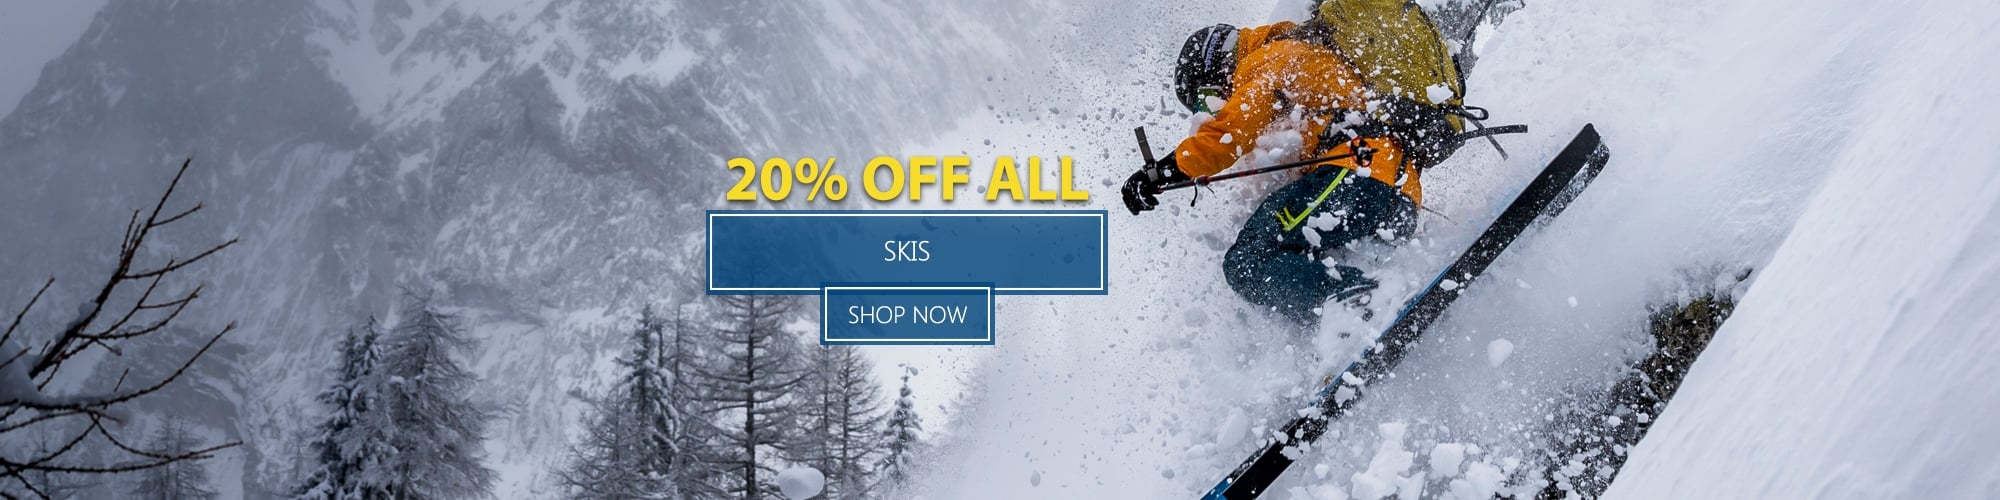 20% Off All Skis